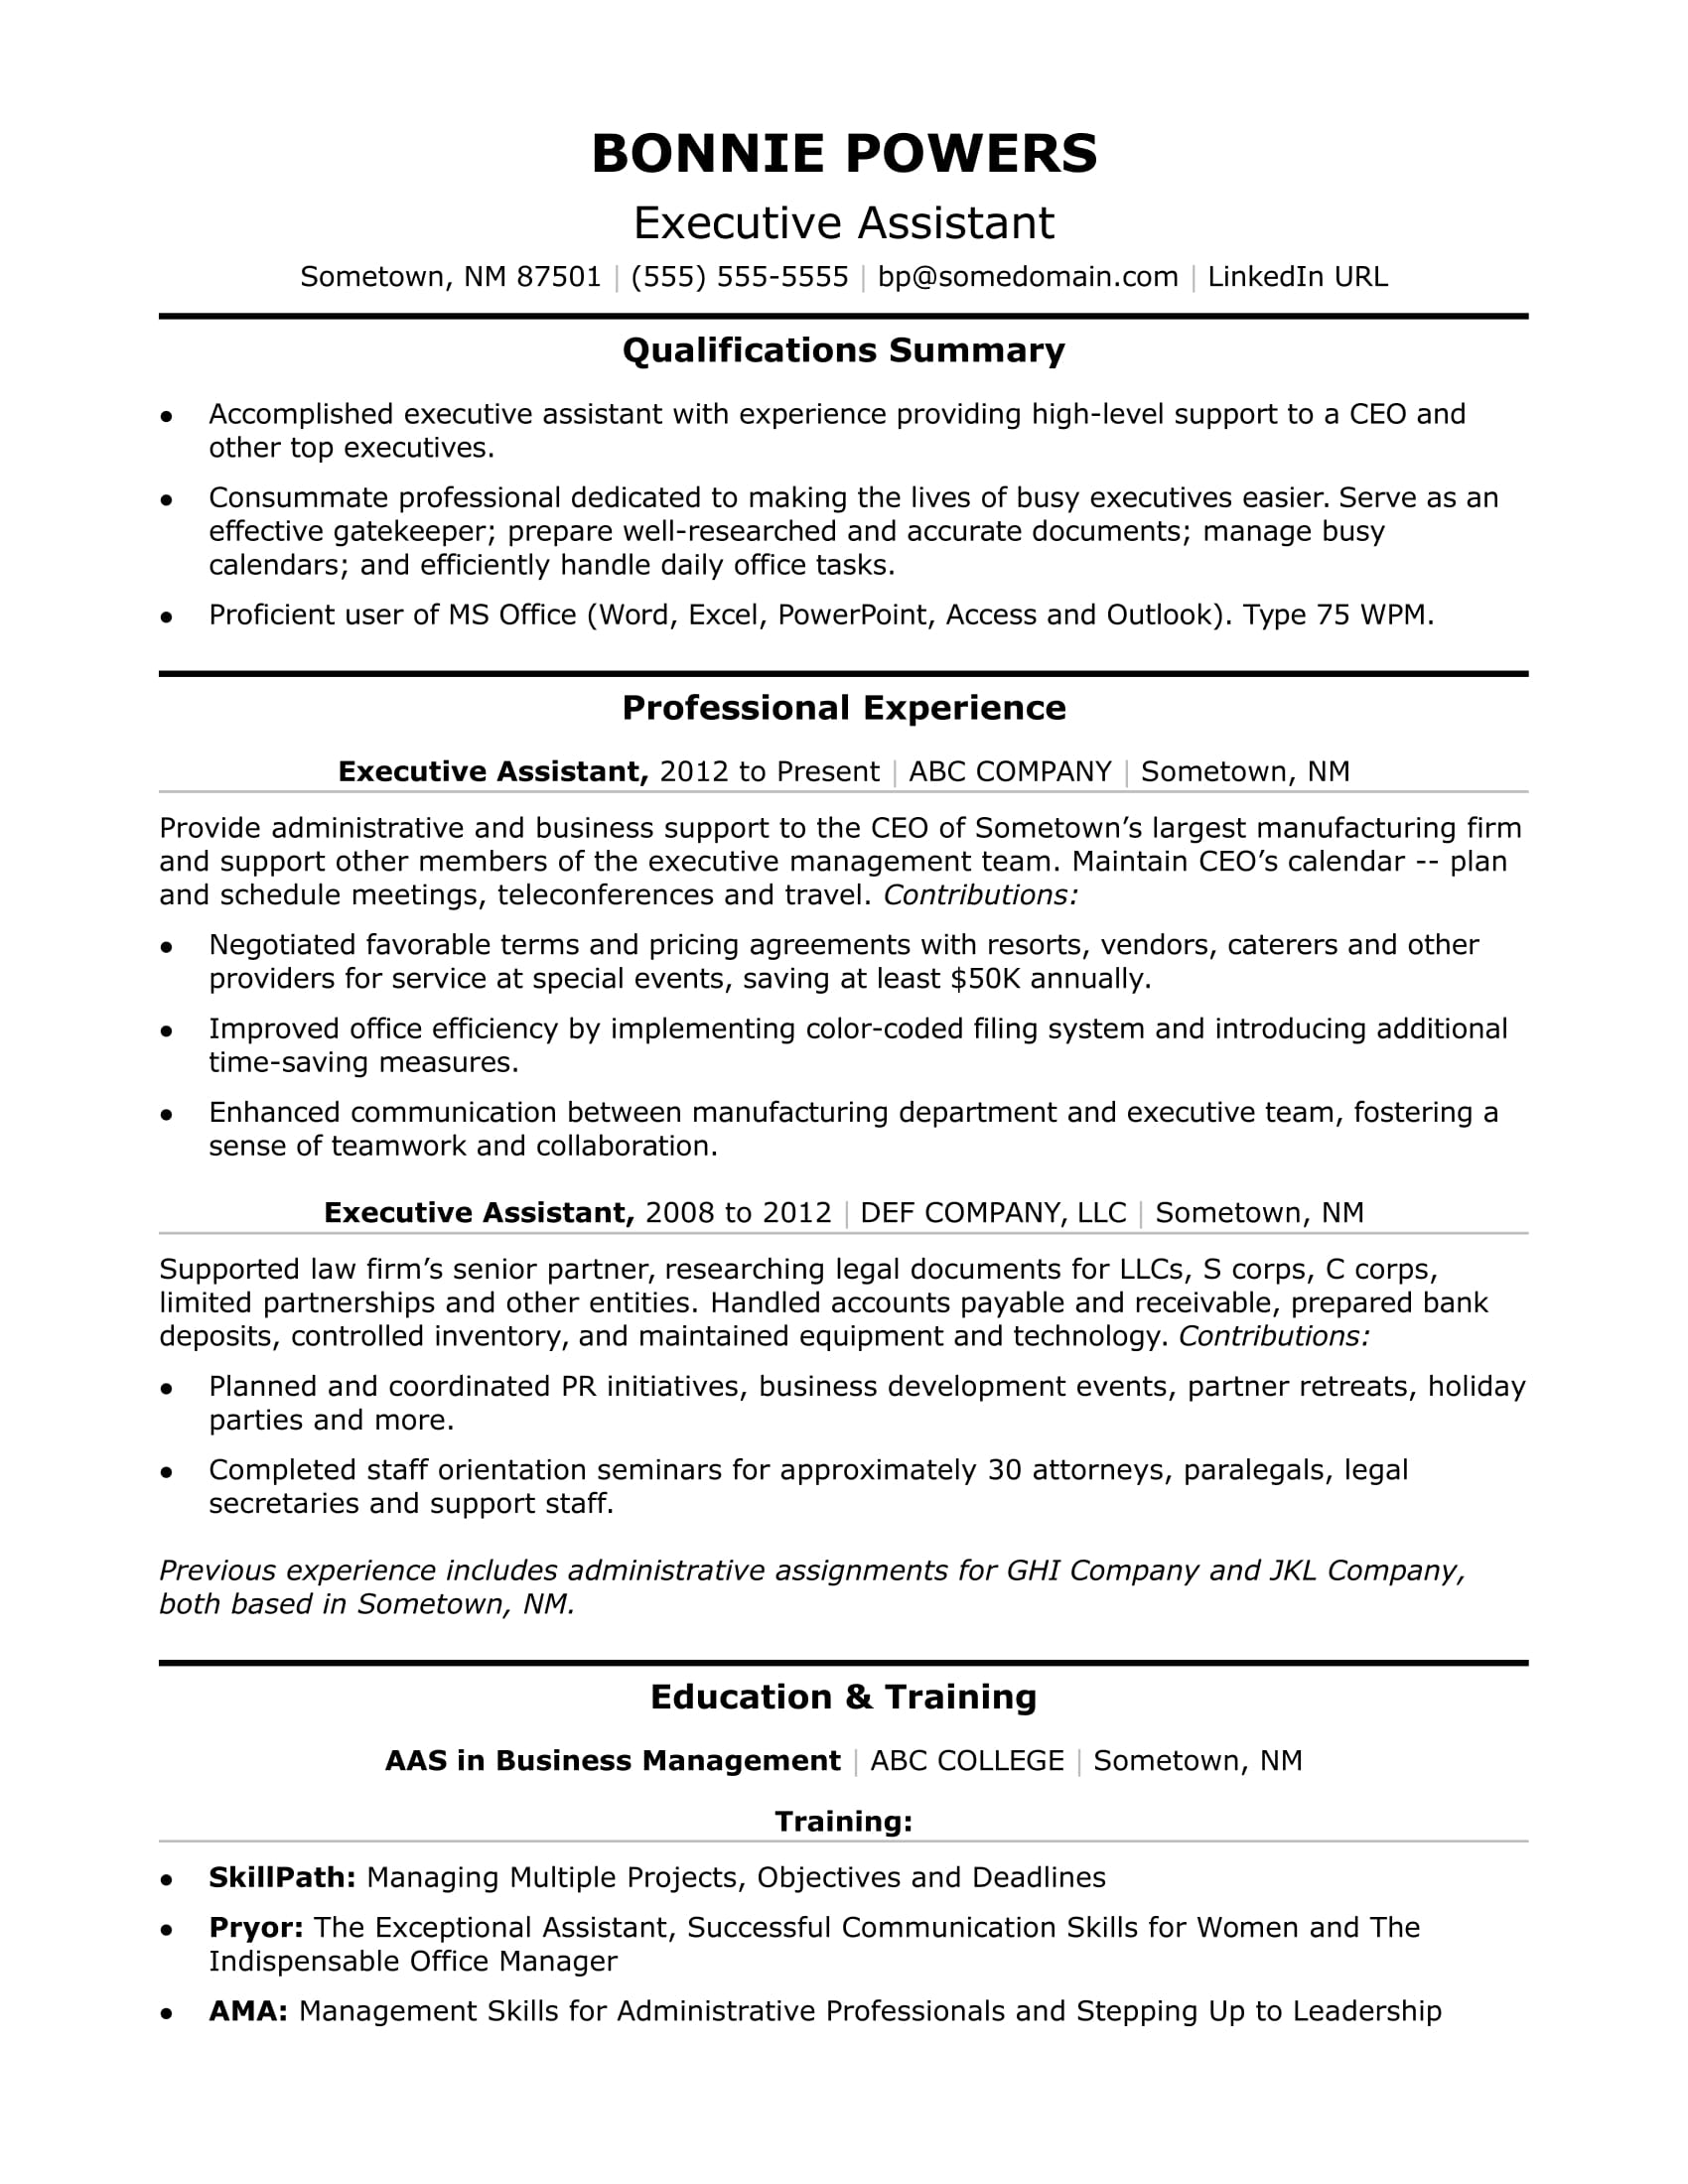 Executive Administrative Assistant Resume Sample | Monster.com